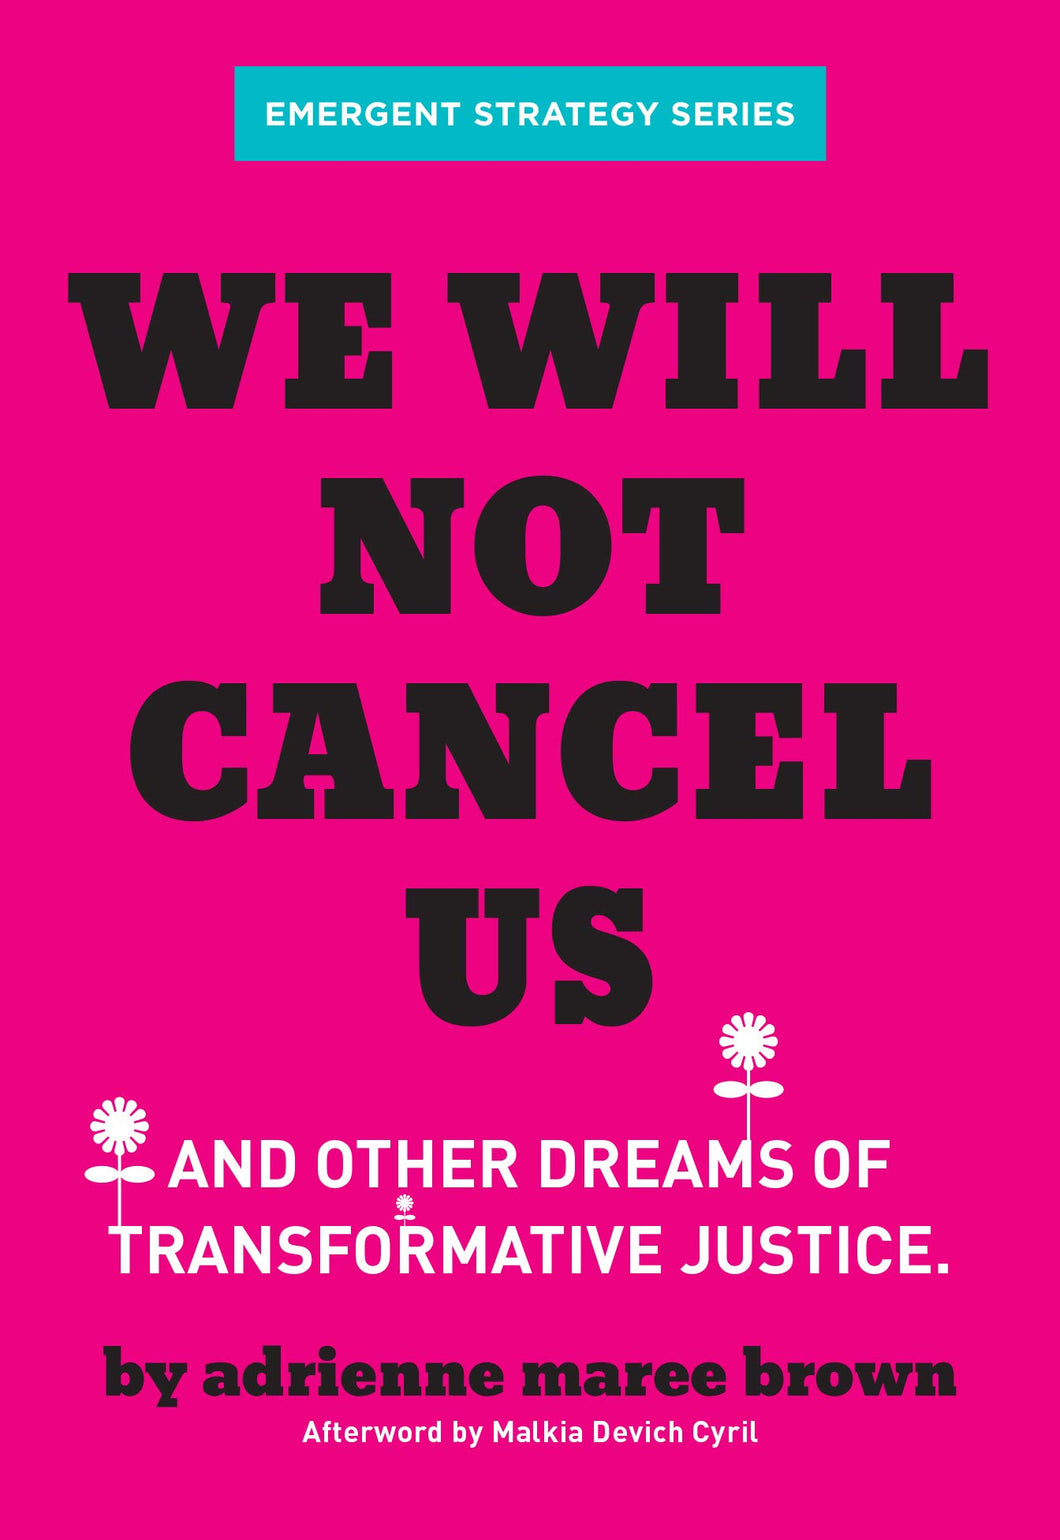 We Will Not Cancel Us: And Other Dreams of Transformative Justice (Emergent Strategy) by adrienne maree brown